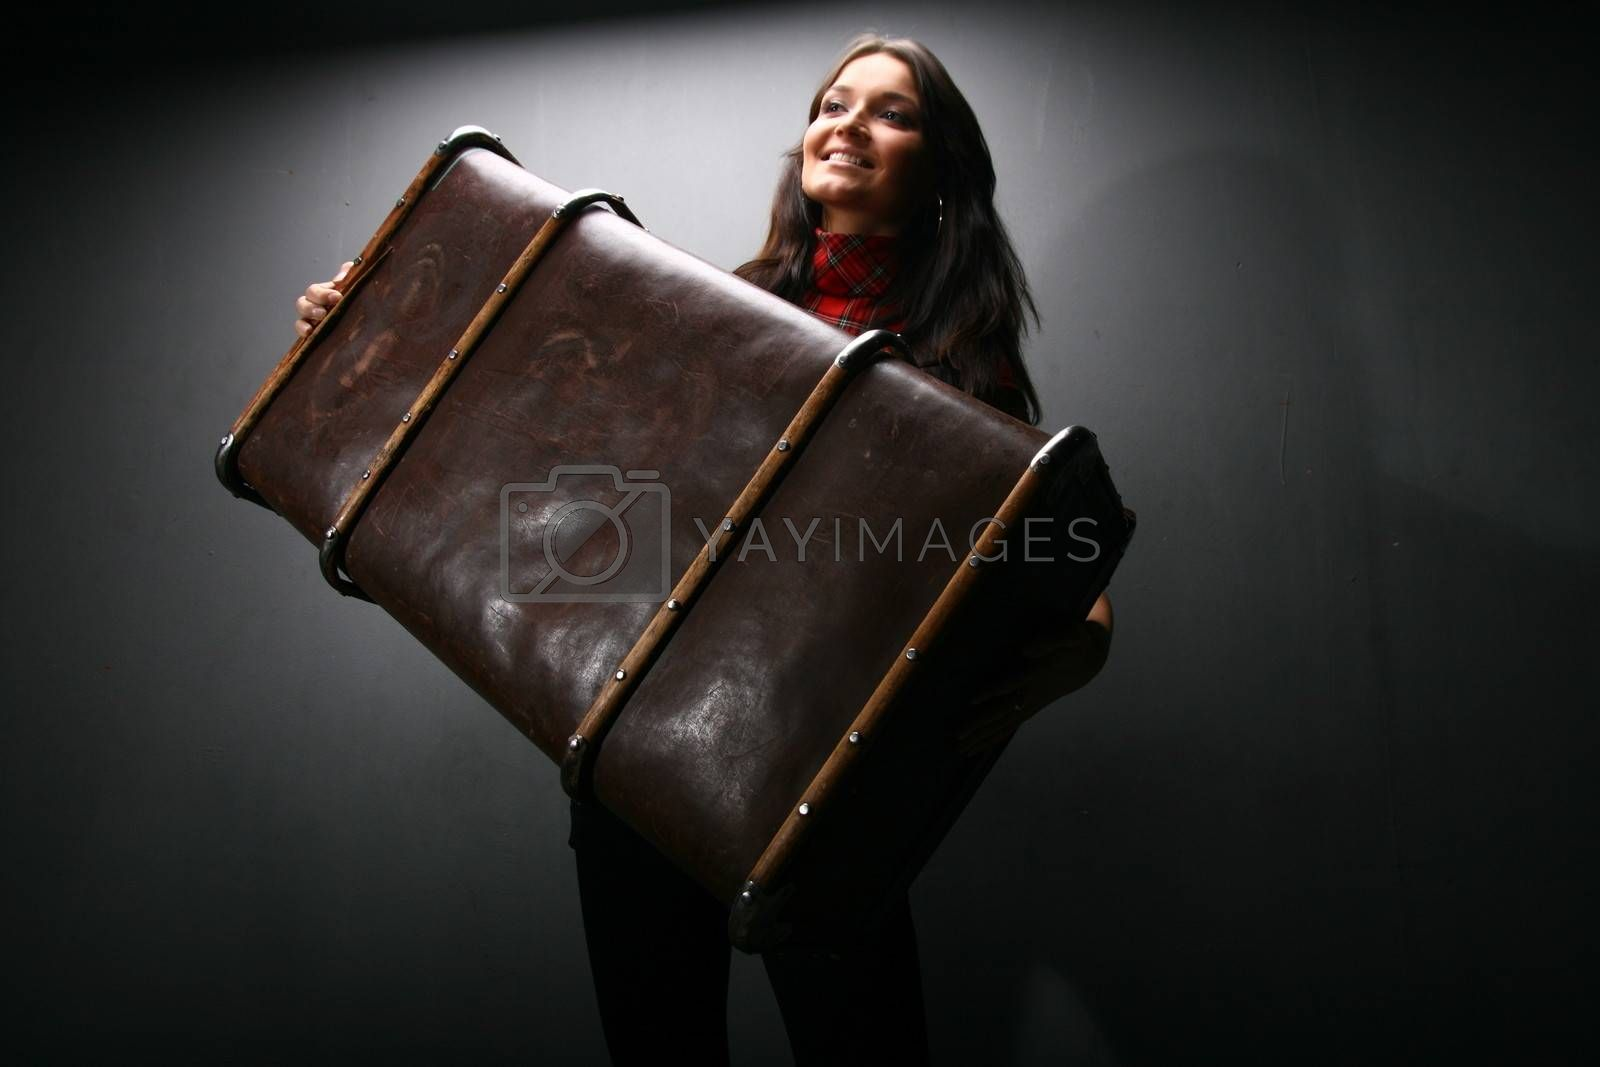 traveler girl  Sits on a suitcase wait to go travel